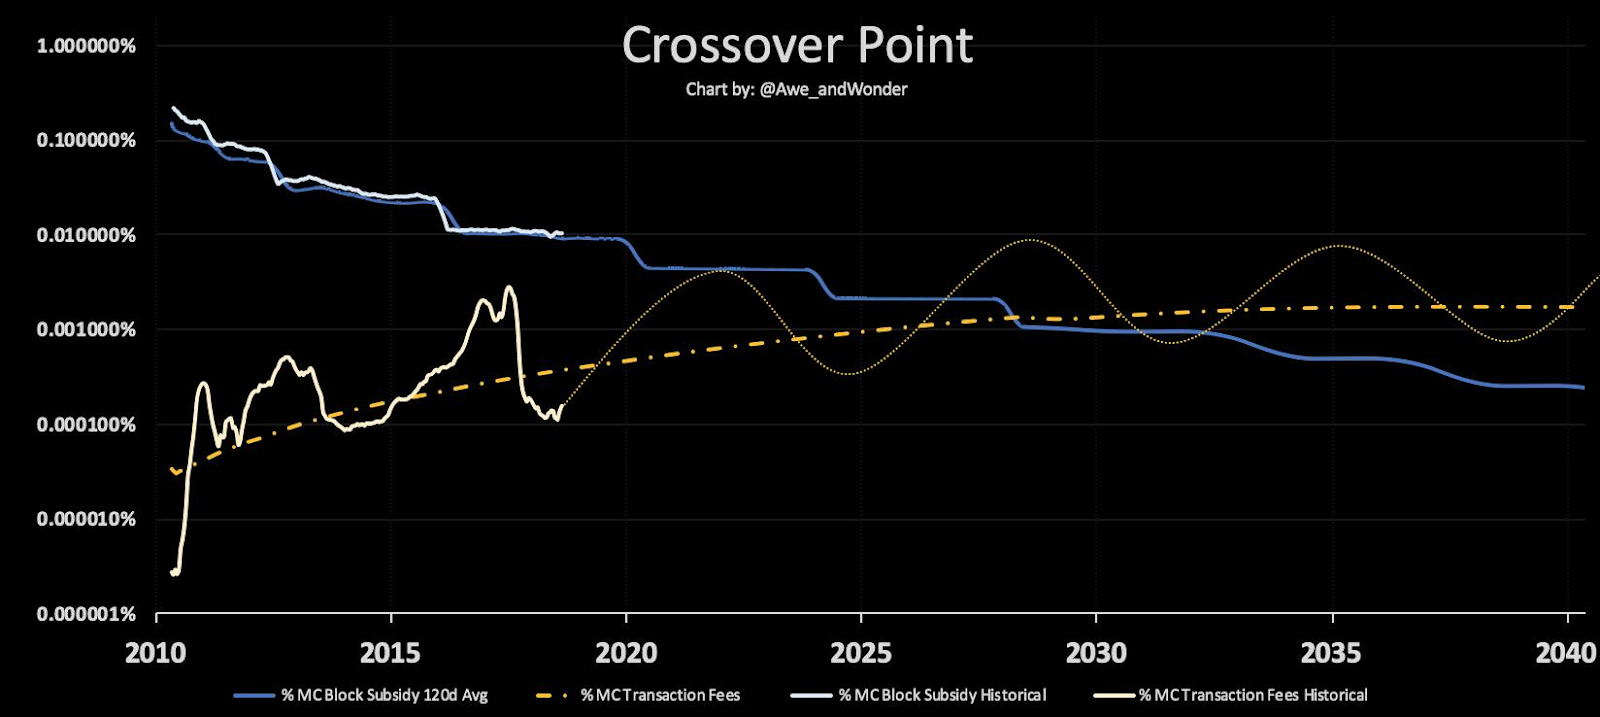 crossover point, what happens when all the bitcoins have been mined